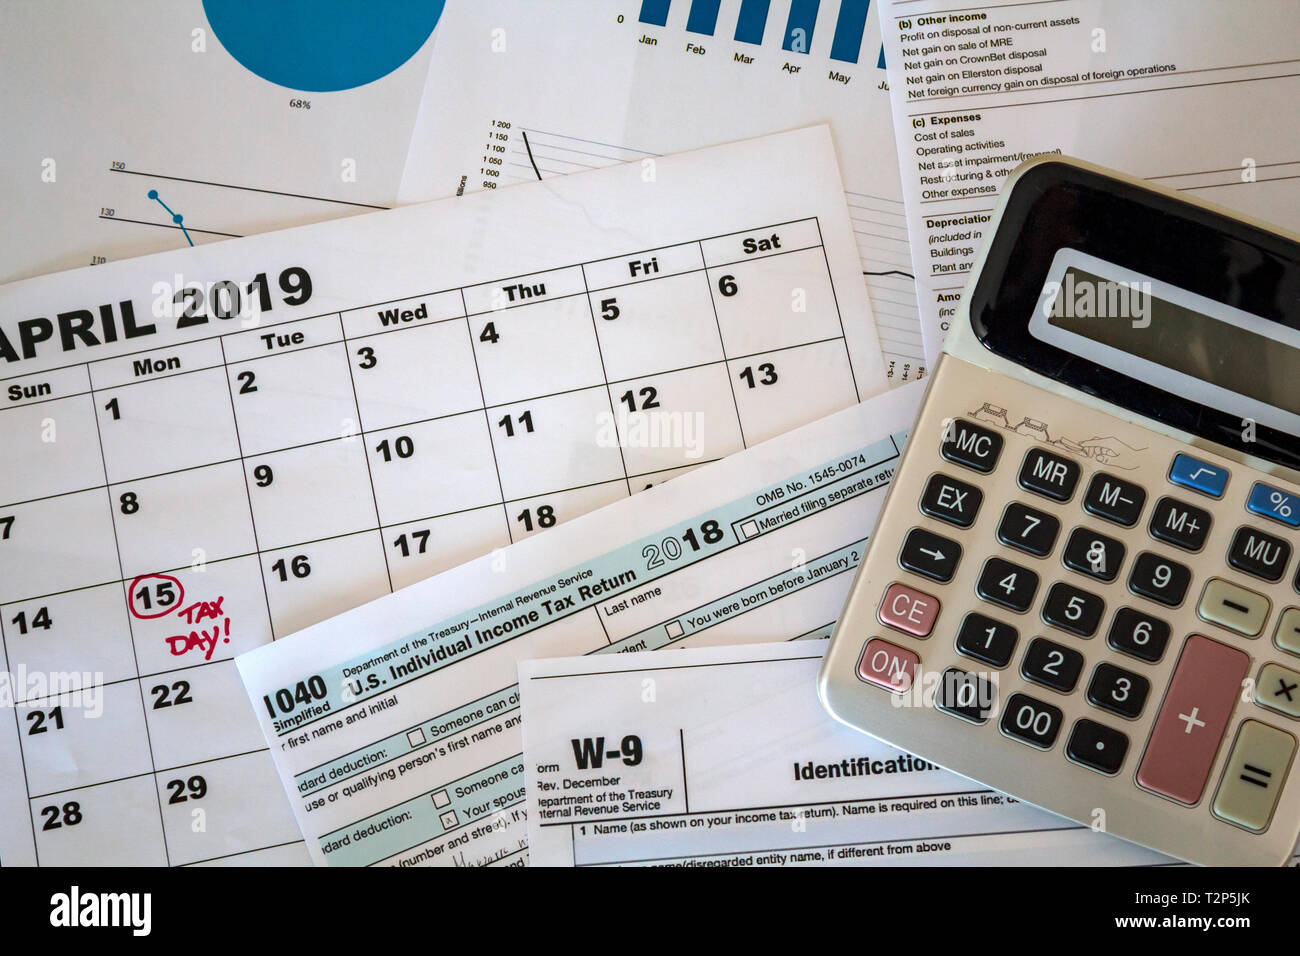 Due Date Calculator Stock Photos & Due Date Calculator Stock Images